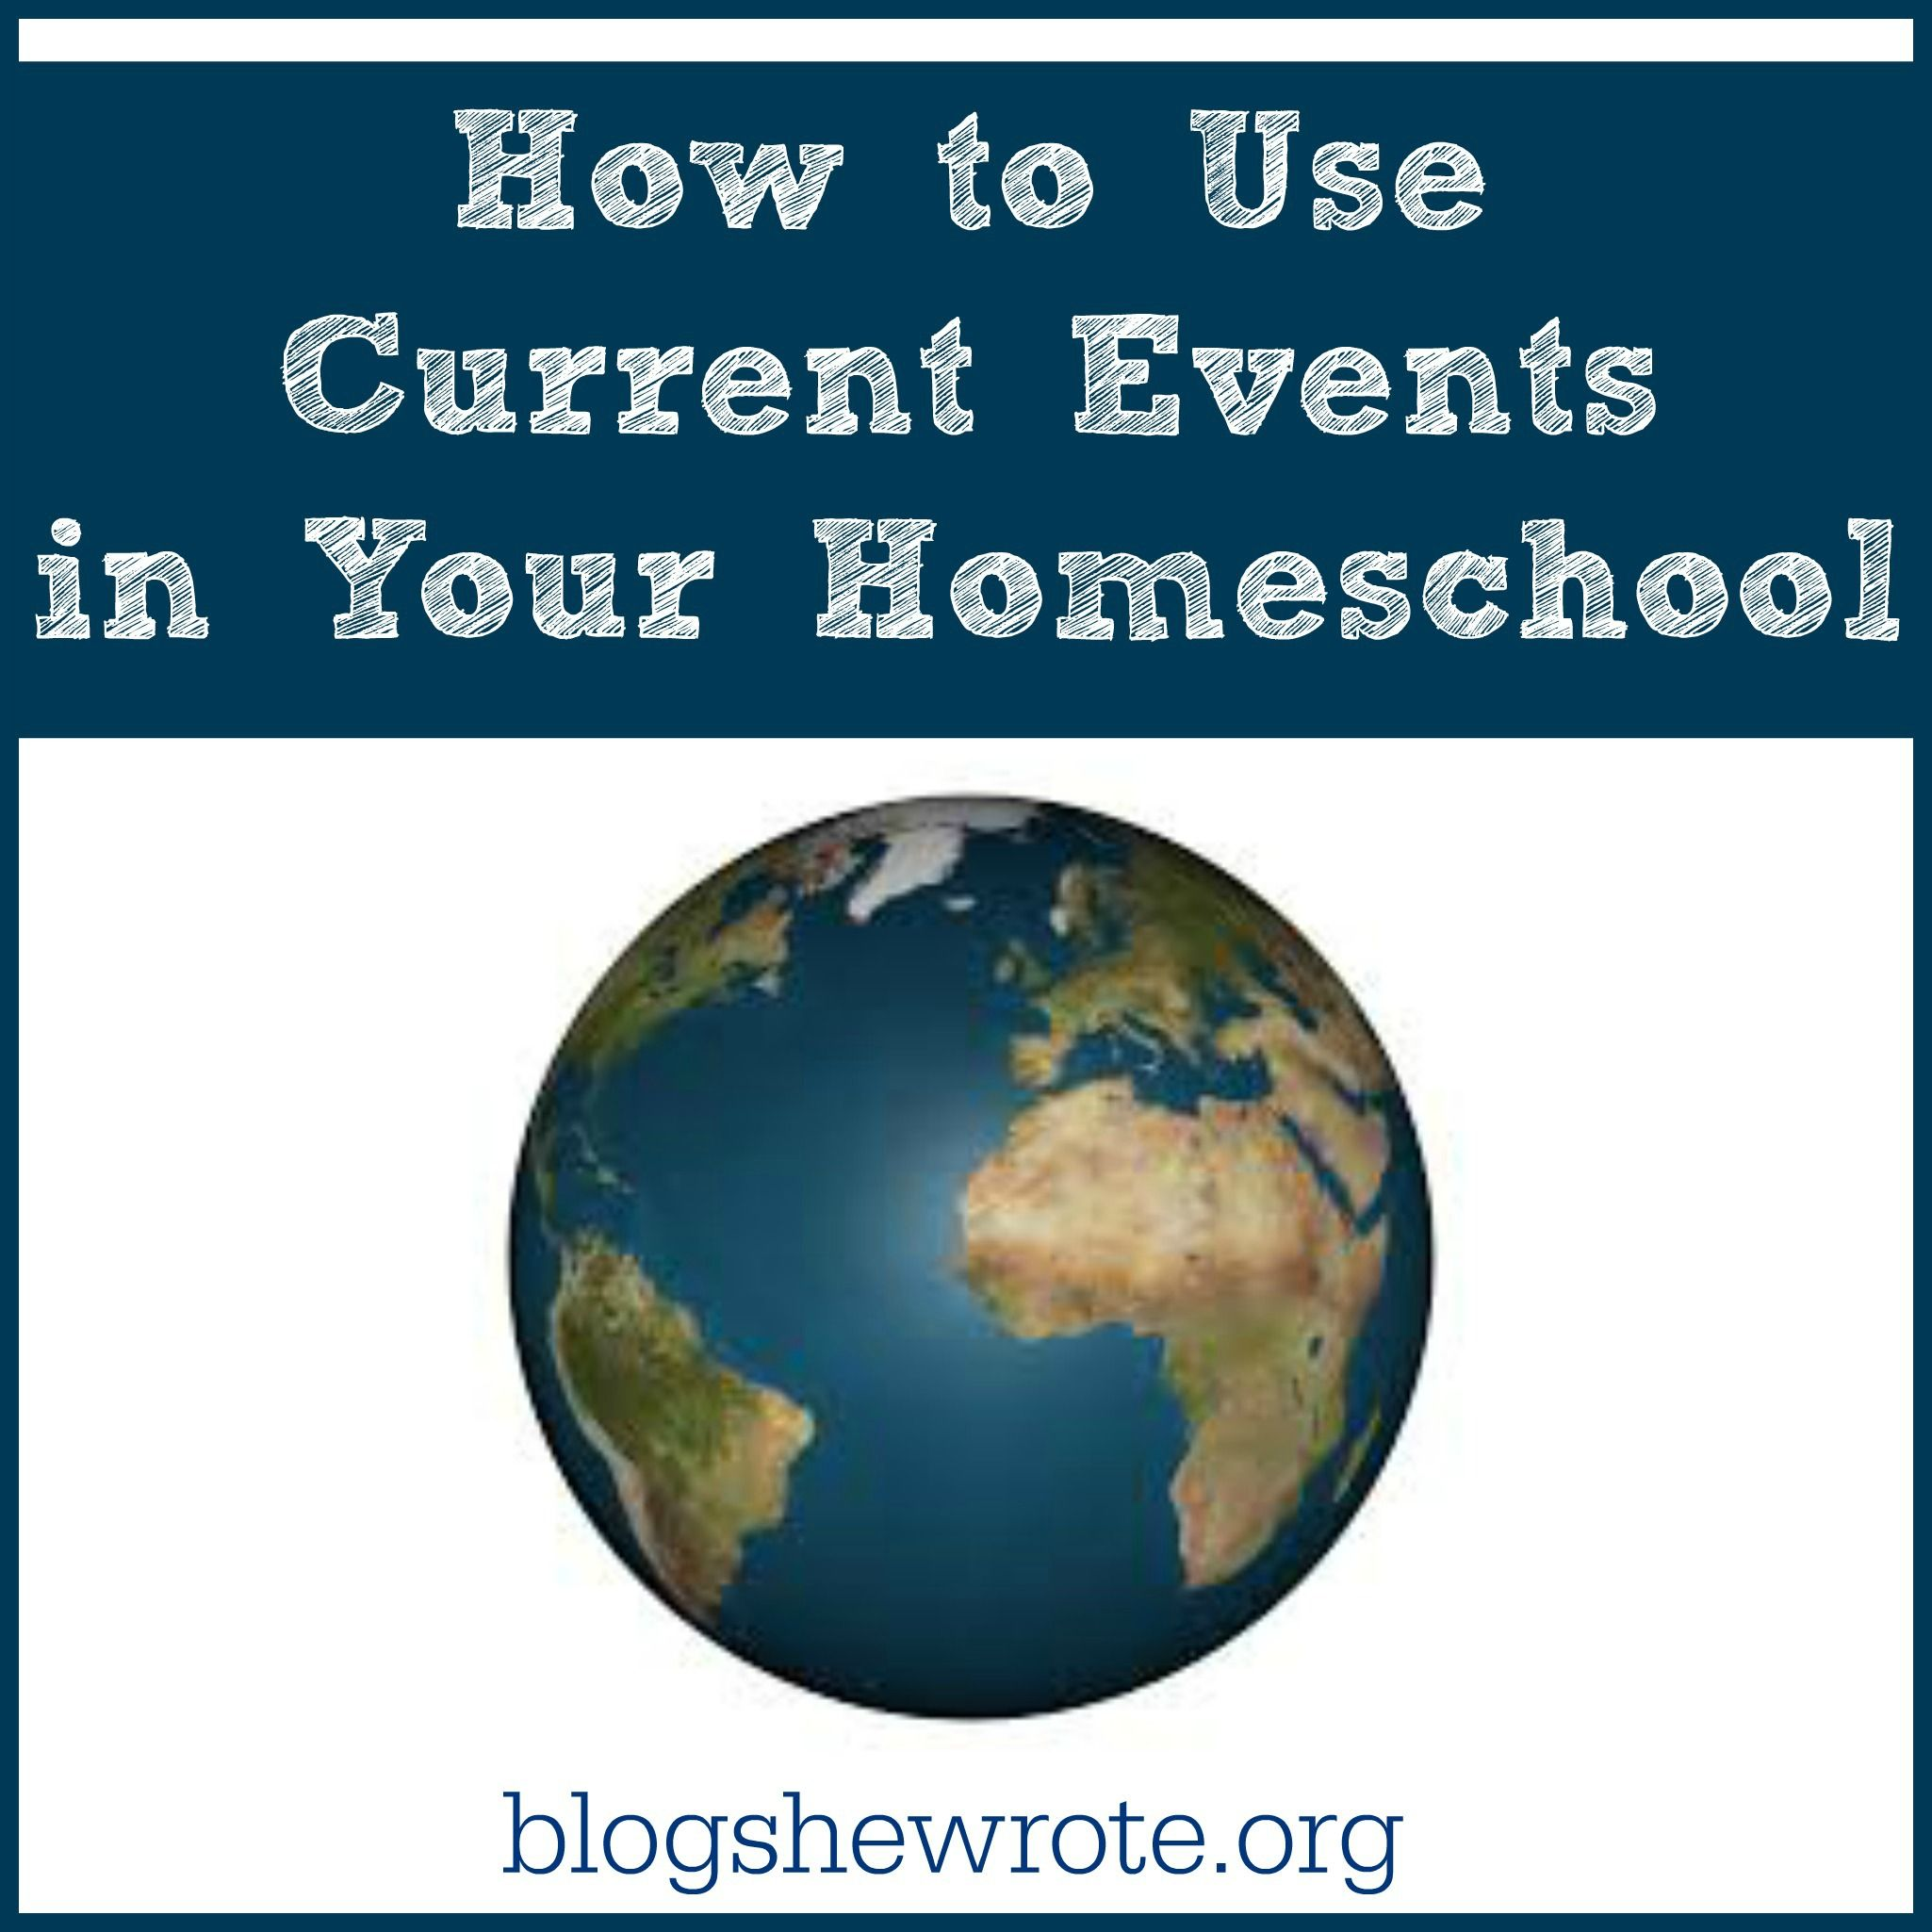 How To Use Current Events In Your Homeschool With Images